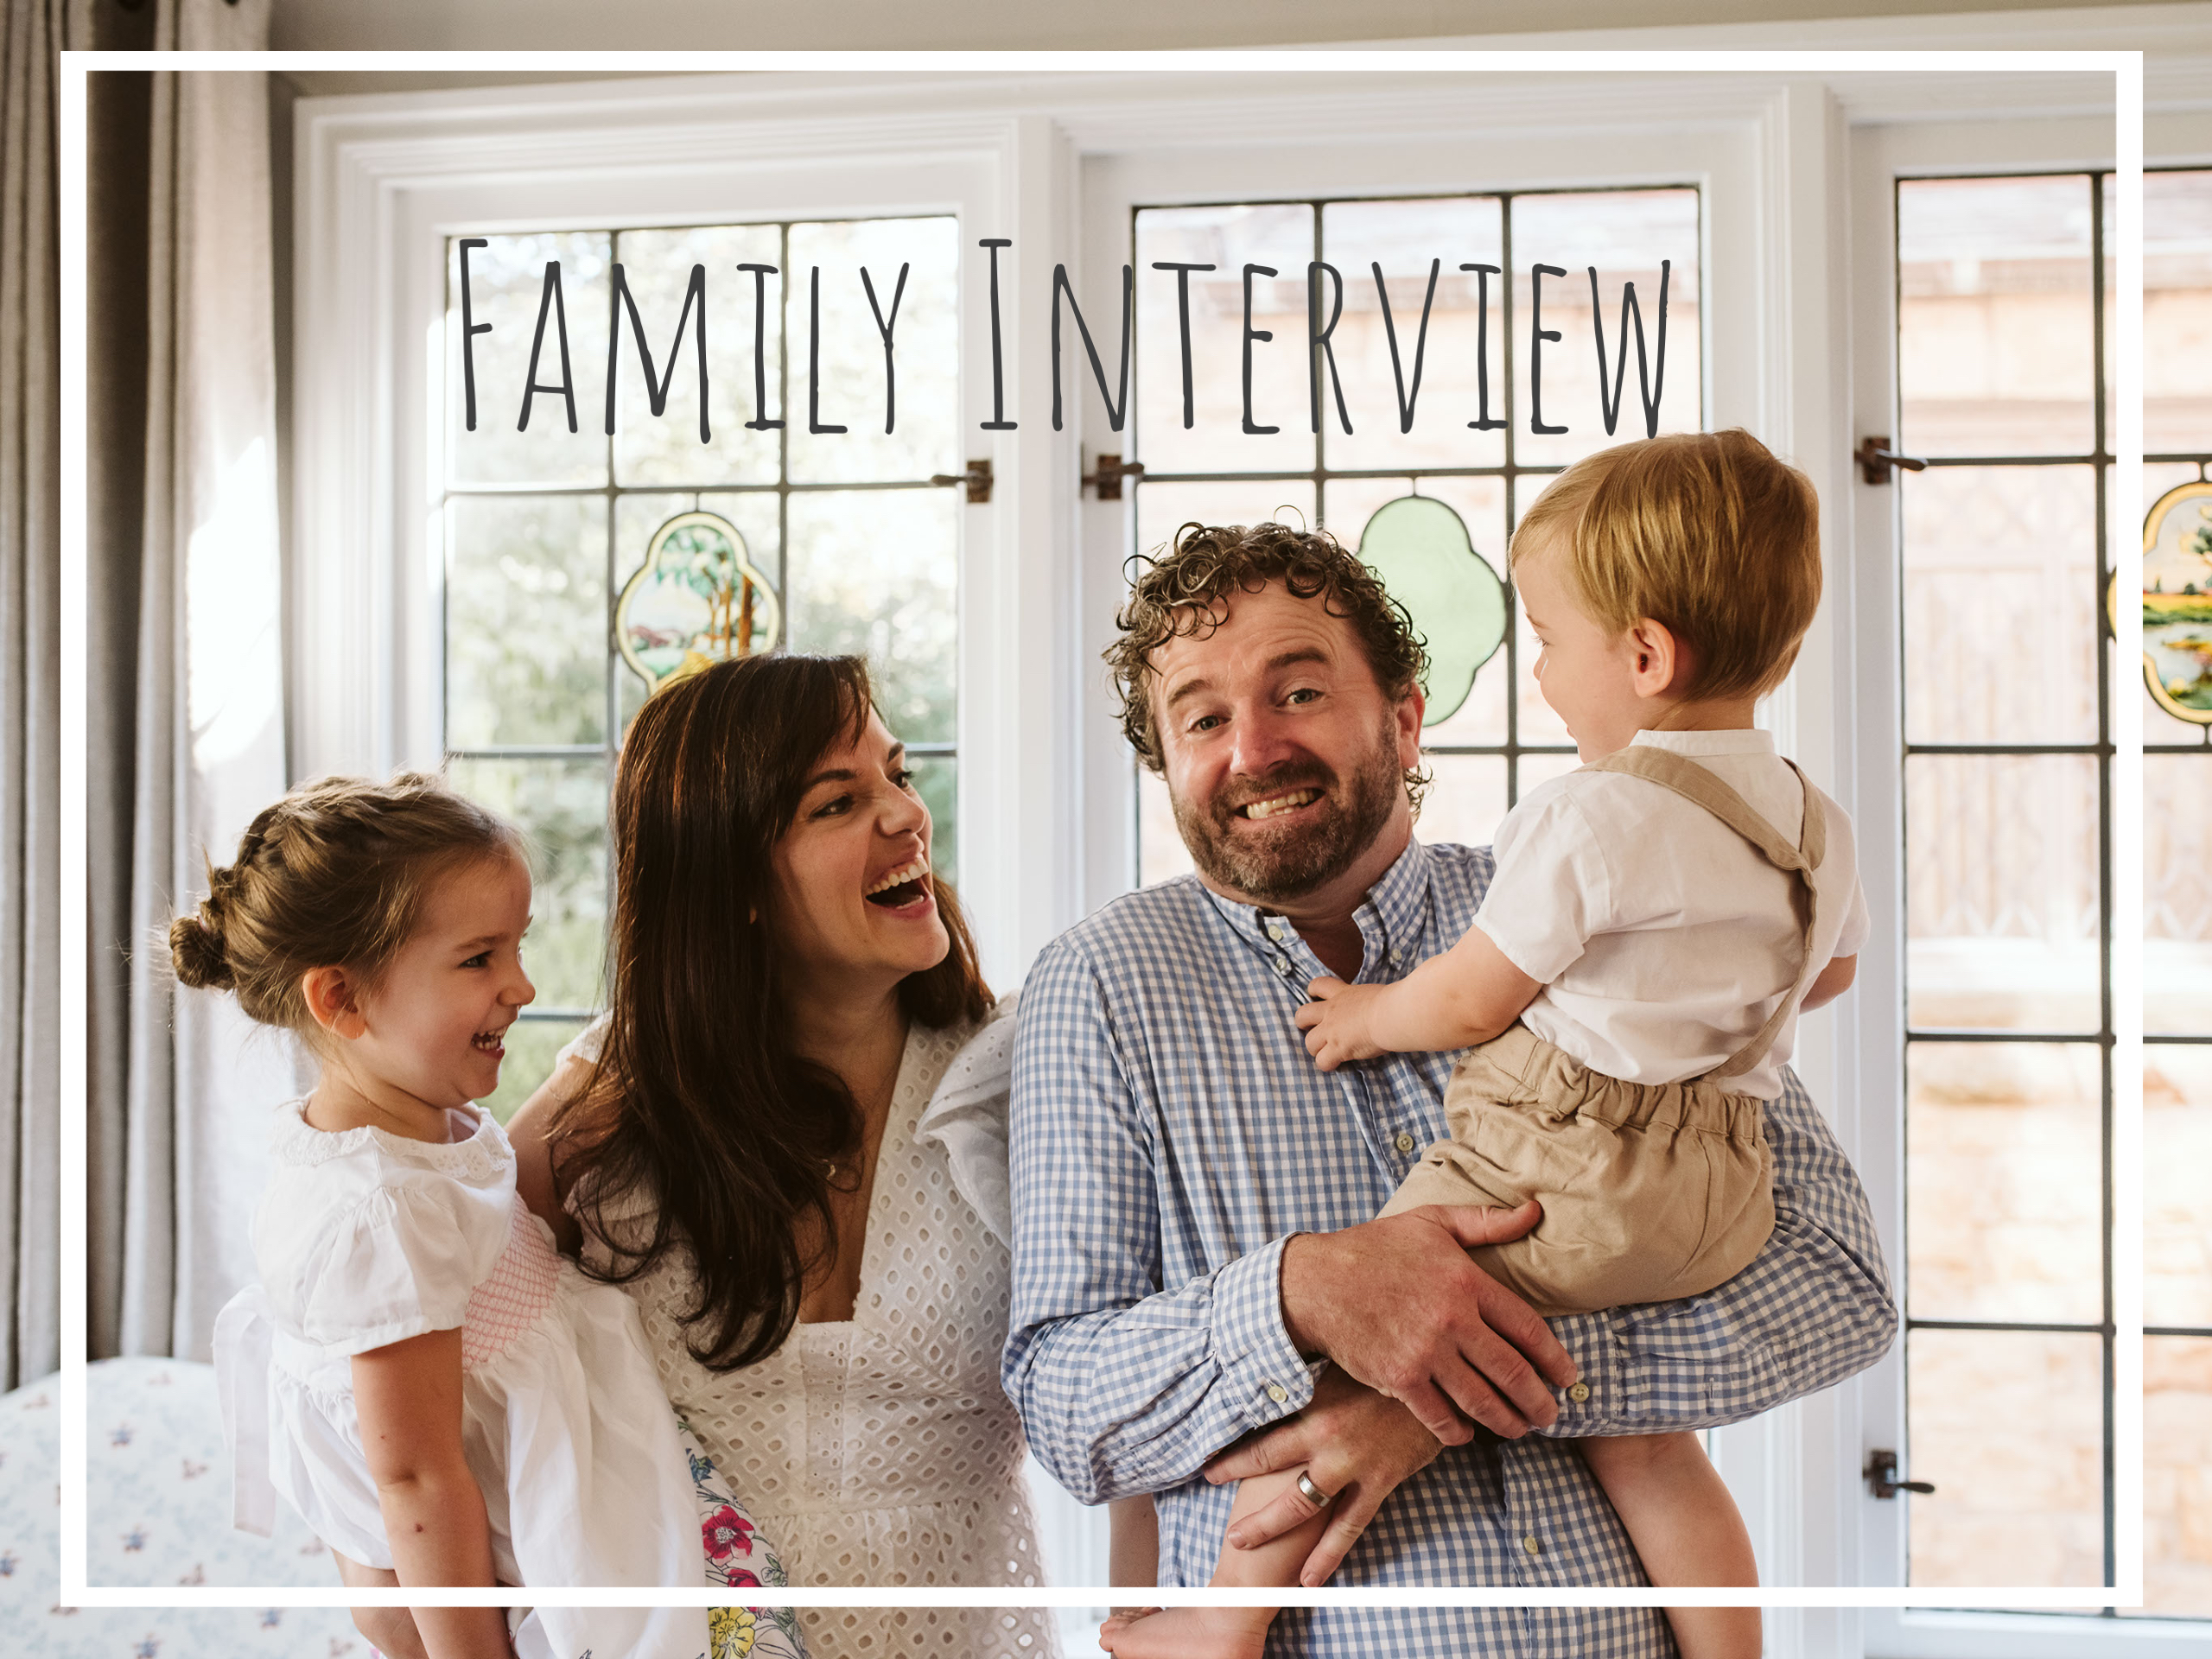 Family Session Interview – Pittsburgh Lifestyle Photographer